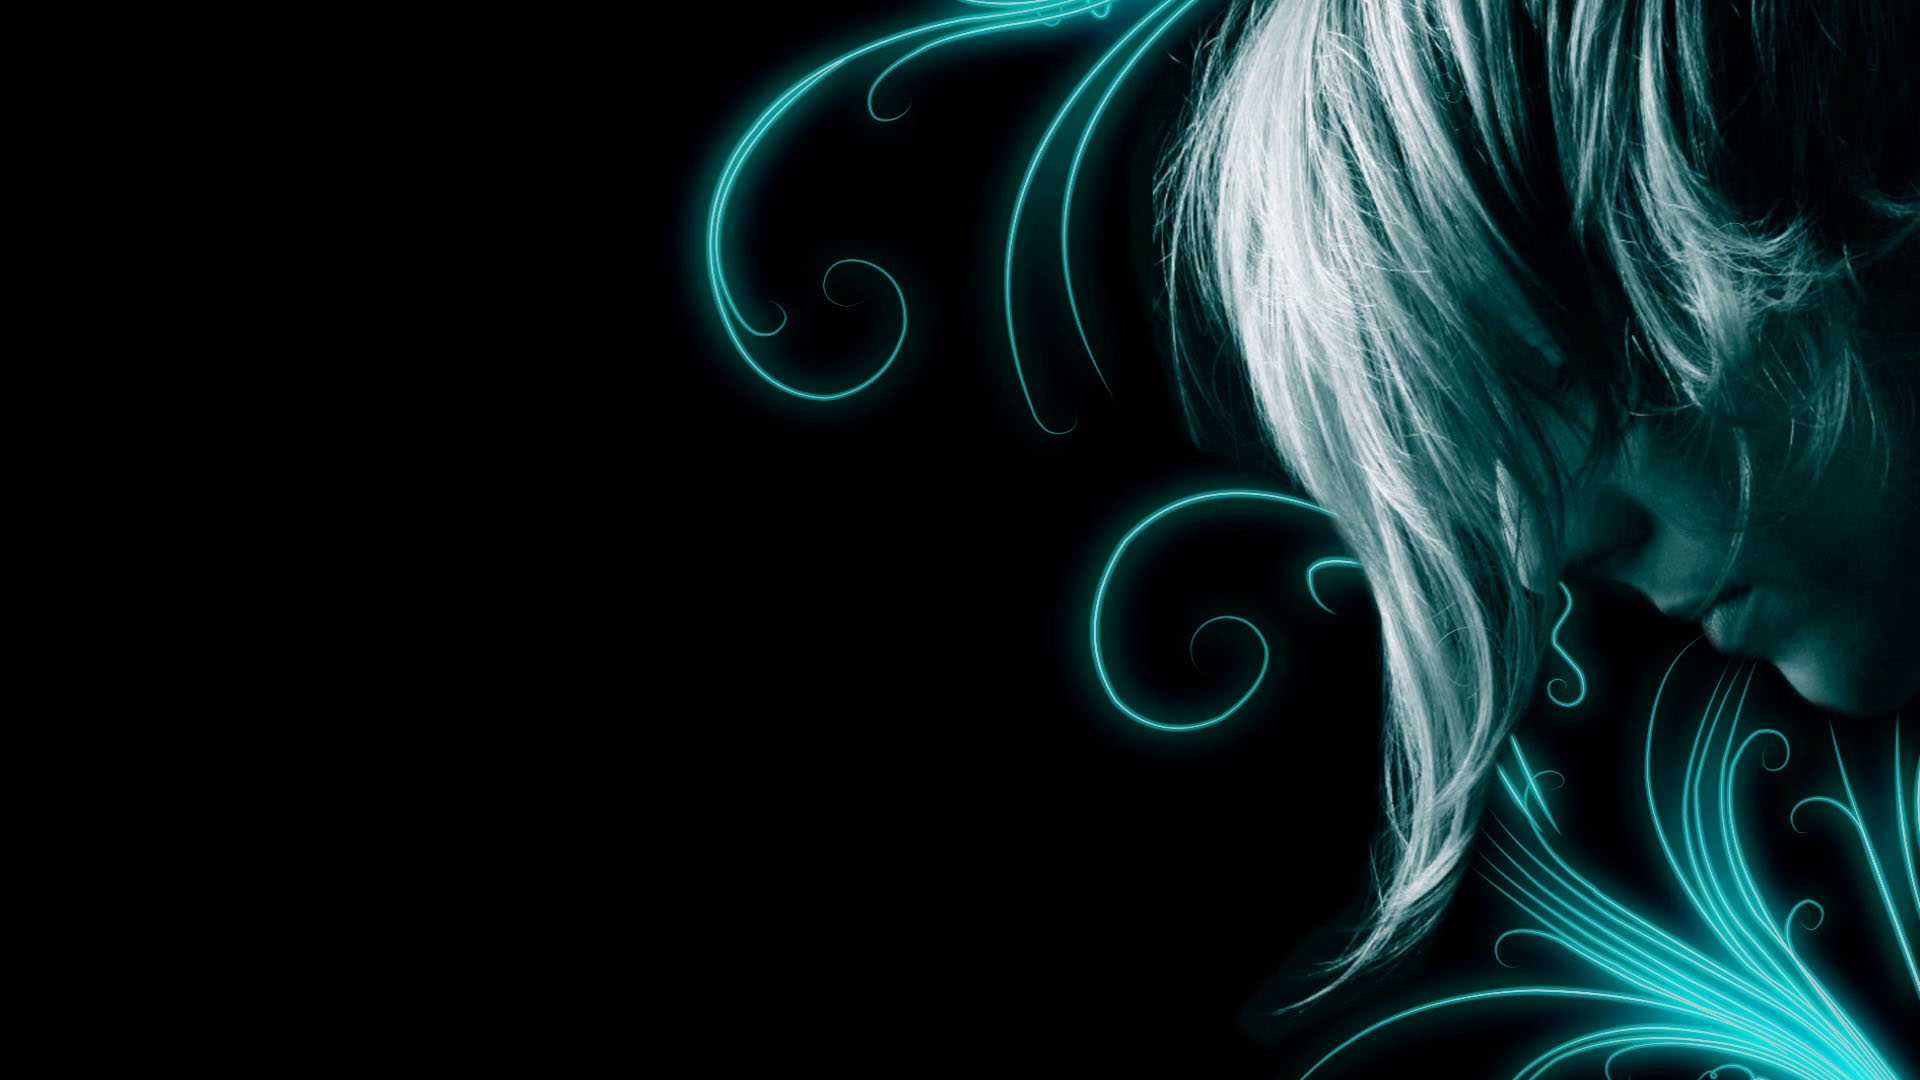 Displaying 18 Images For   Teal And Black Hair 1920x1080